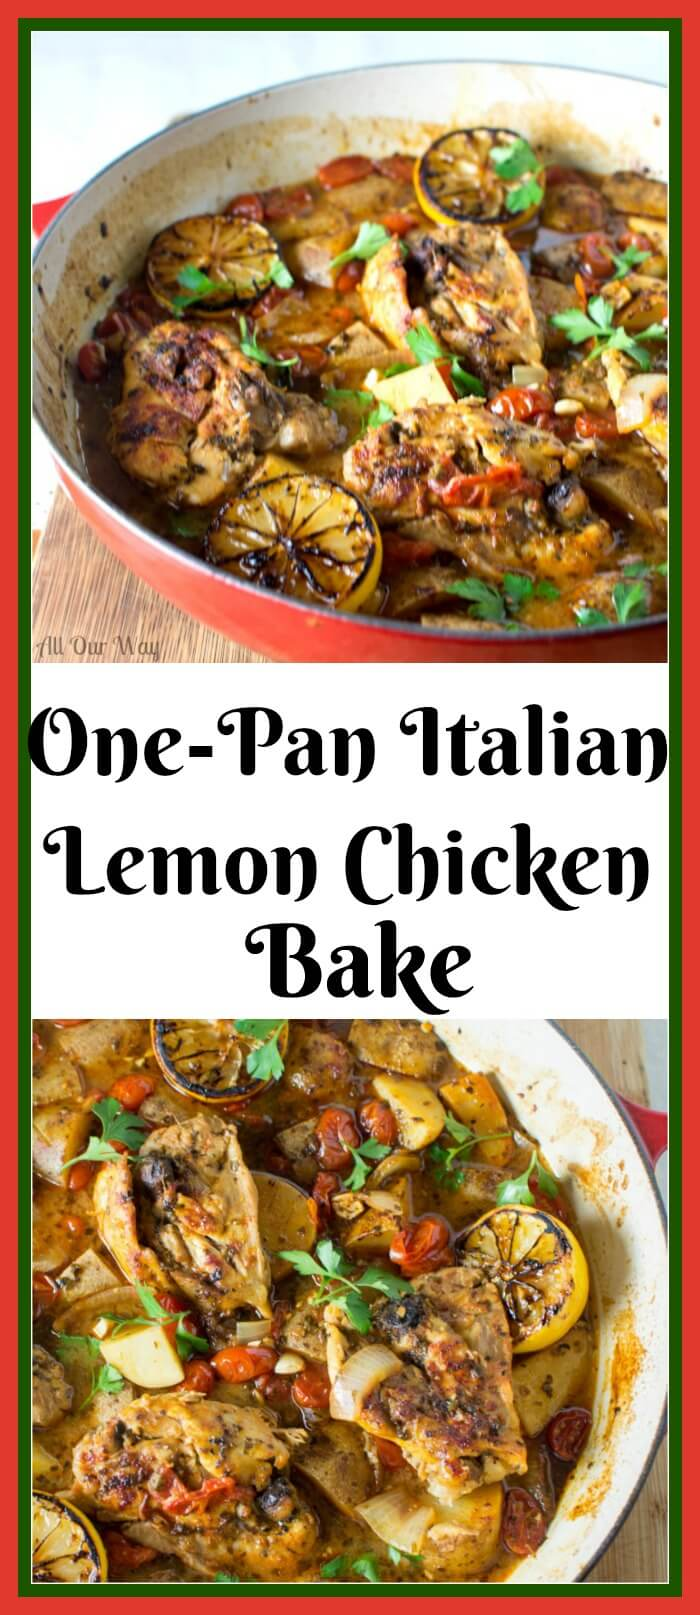 One Pan Italian Lemon Chicken Bake with Potatoes, Fennel, and Grape Tomatoes, @allourway.com